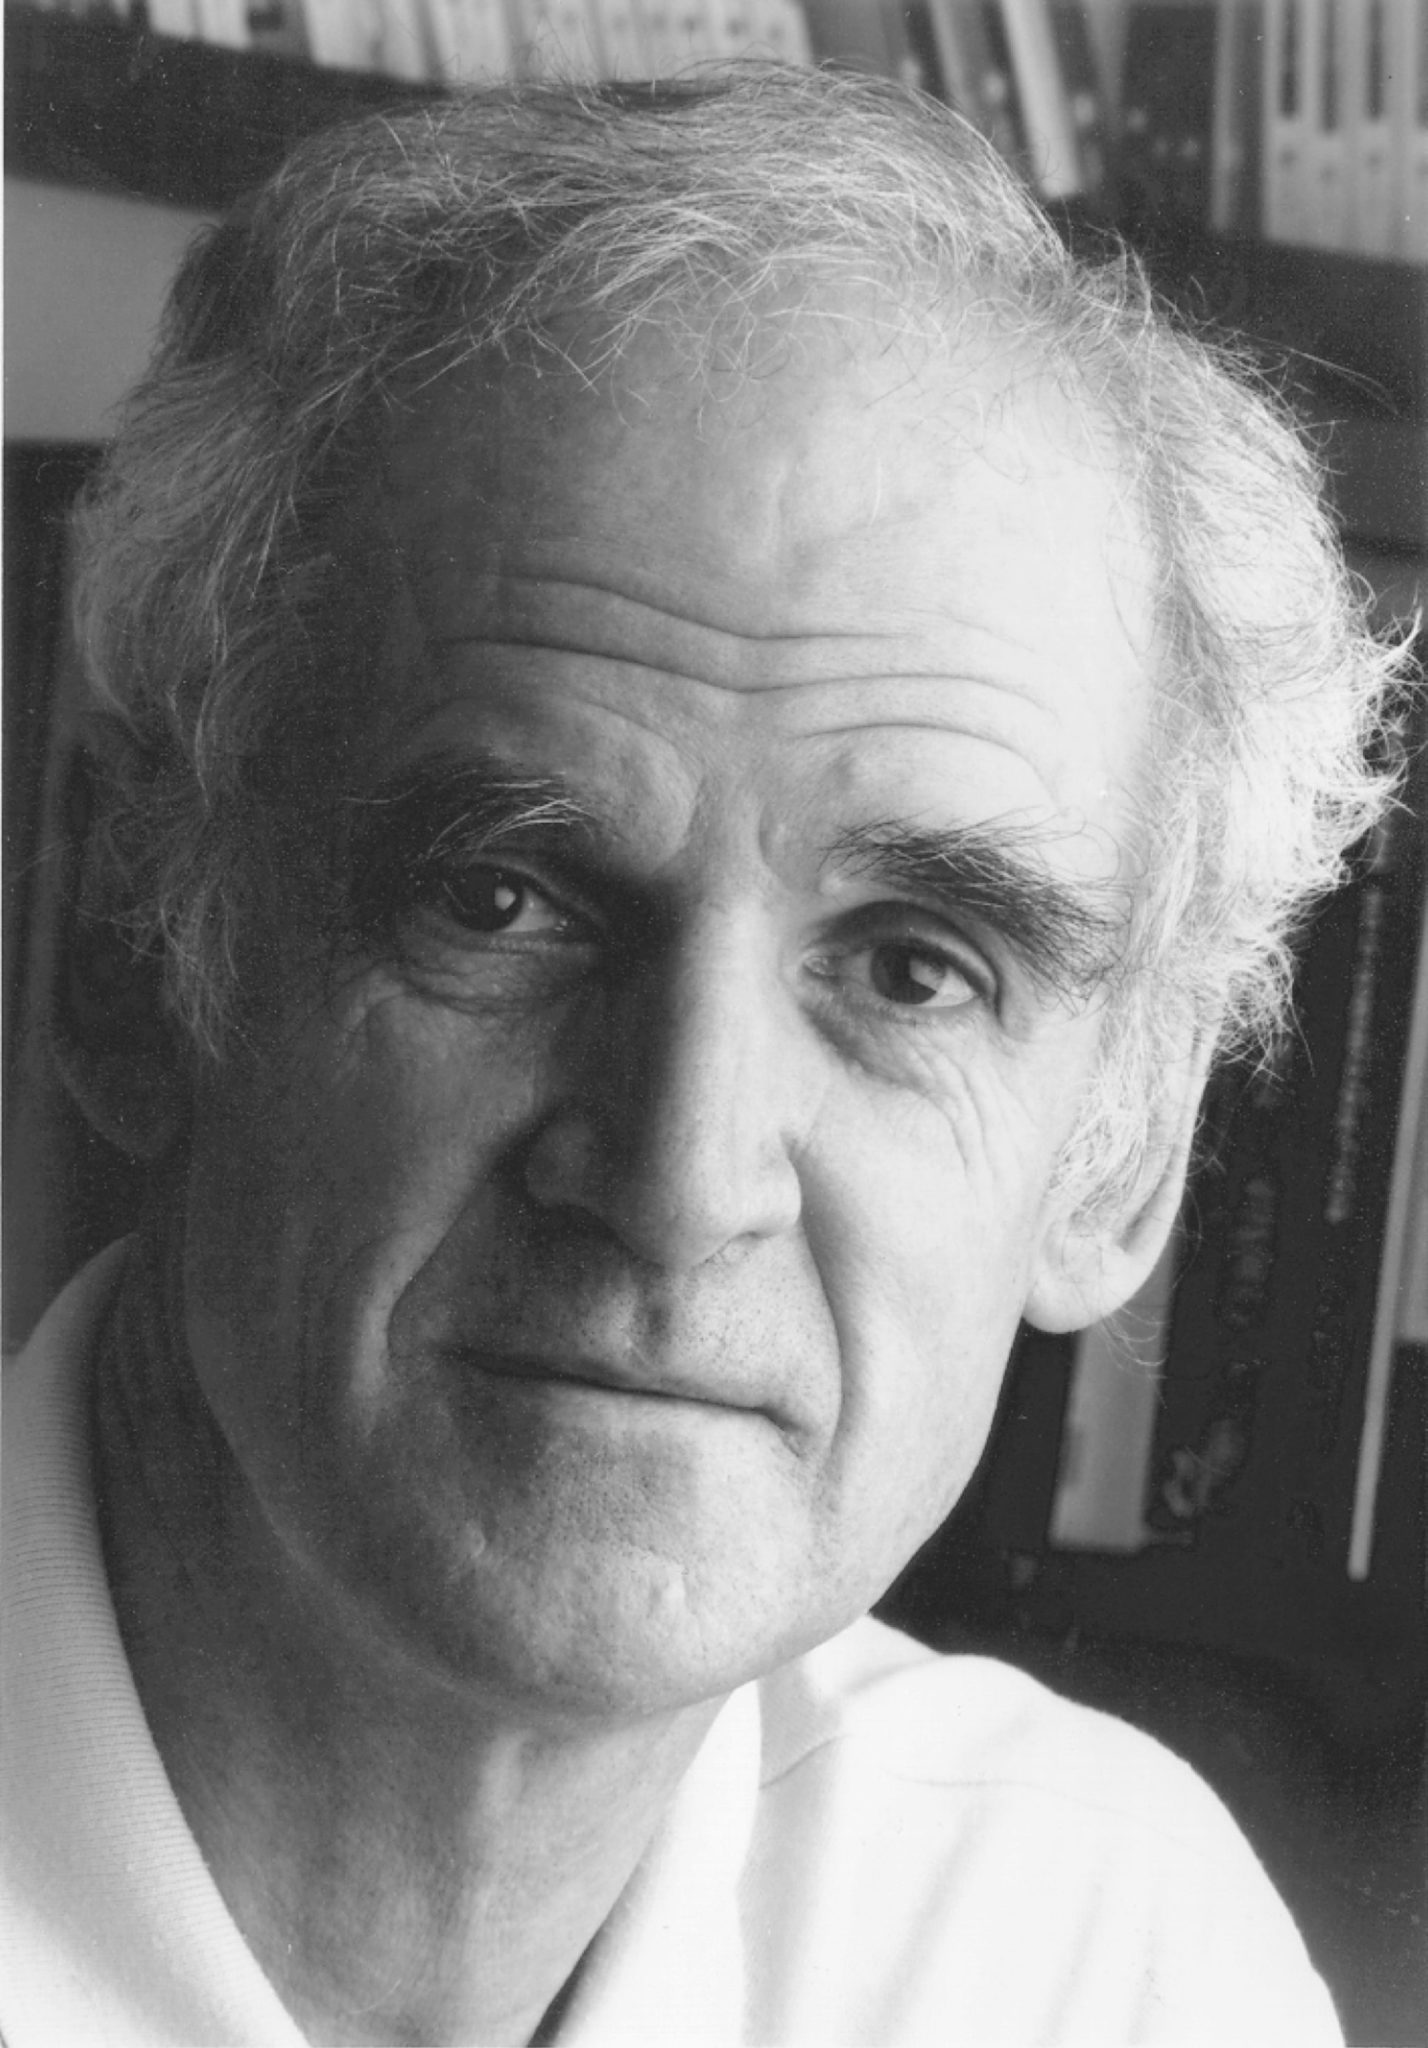 Photograph of philosopher and Templeton Prize winner Charles Taylor.